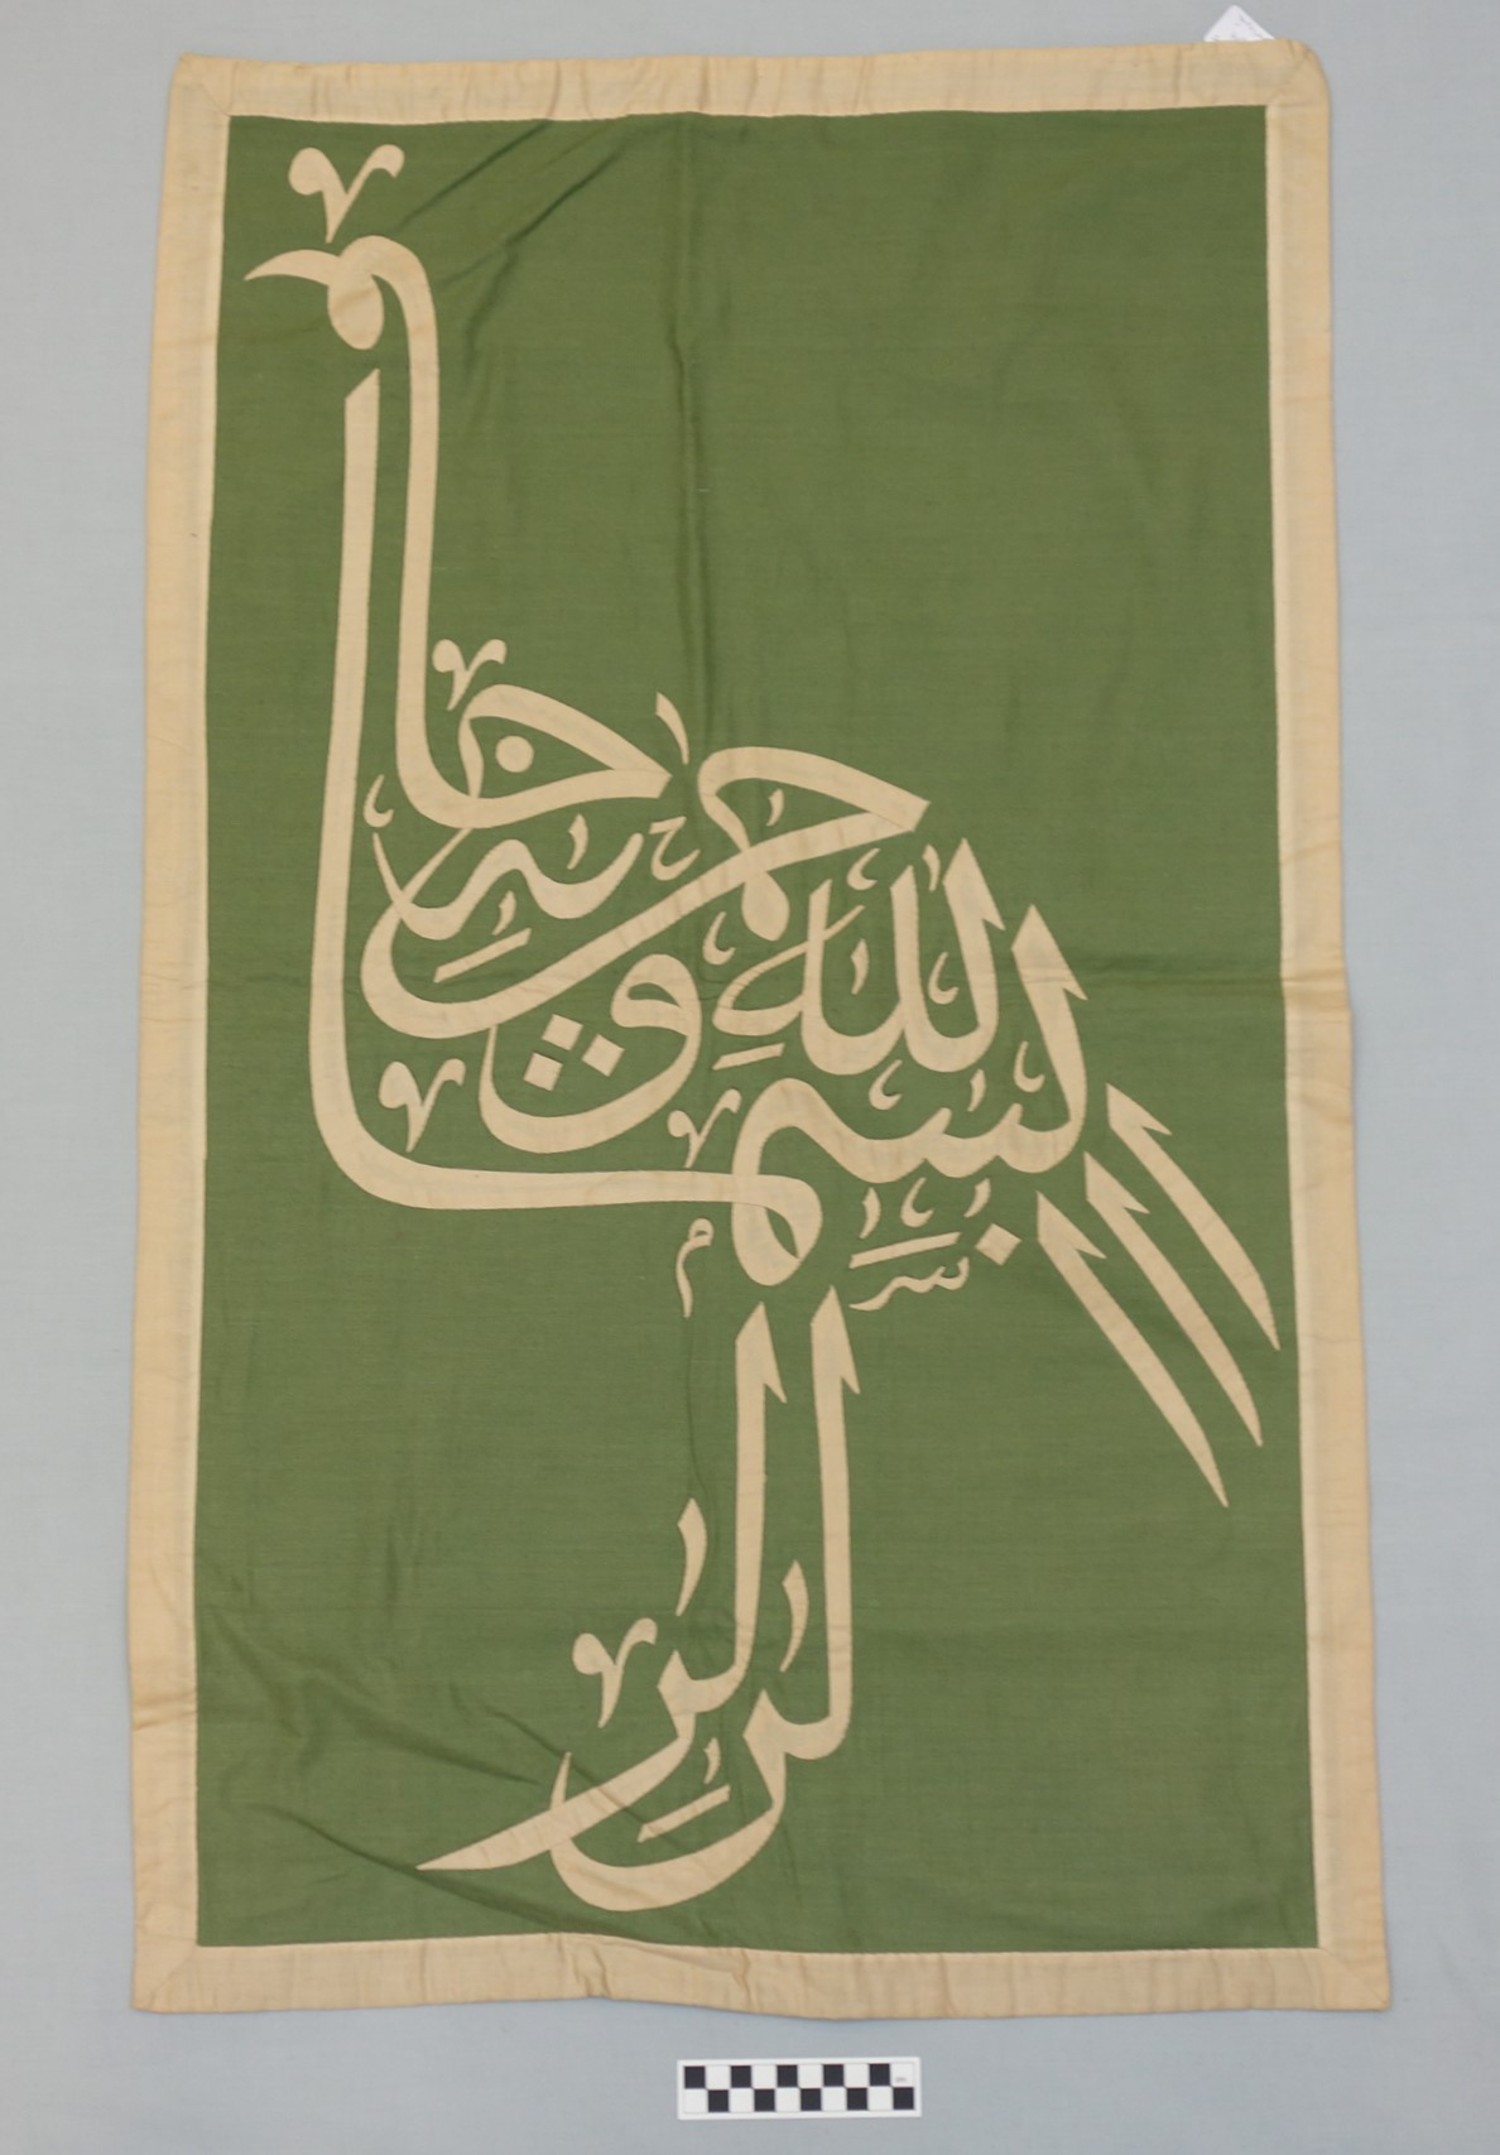 Appliqué panel from the Street of the Tentmakers, Cairo, Egypt (TRC 2014.0818), showing a text written in the shape of a bird. For more information, click on the illustration.